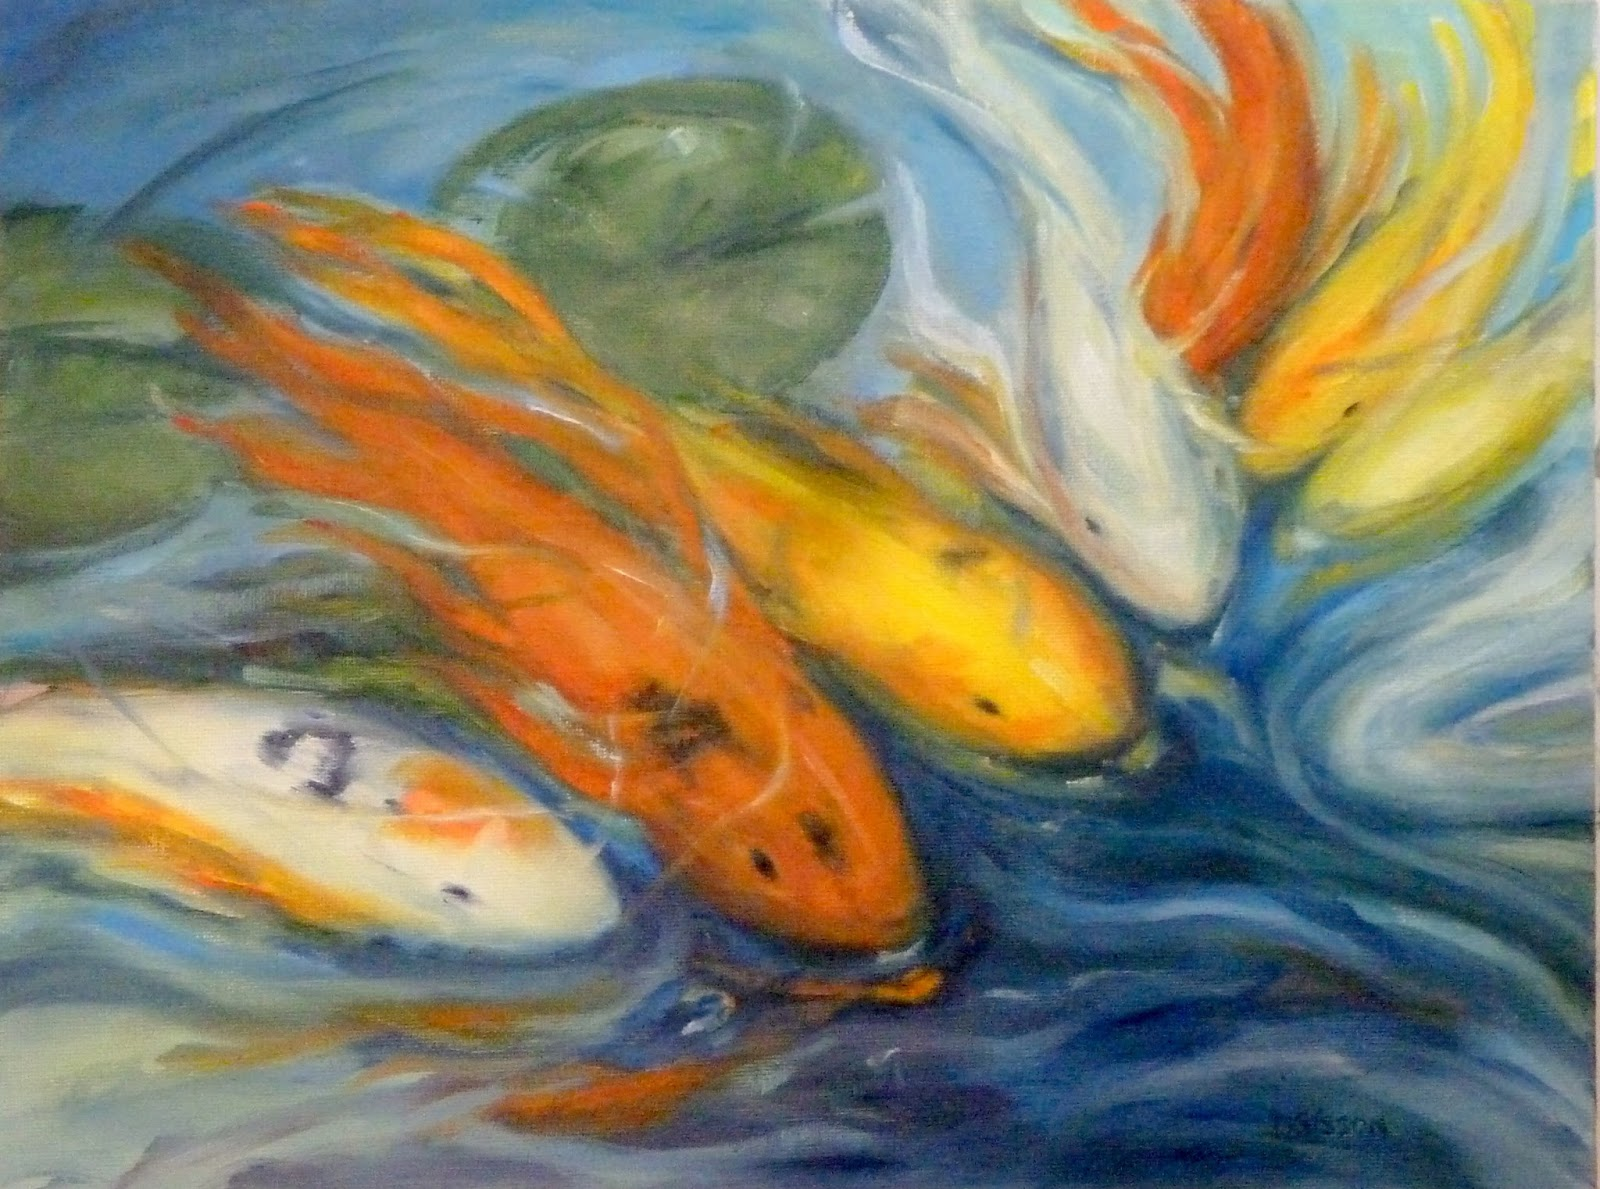 Daily painting projects koi school fish oil painting koi for Koi fish art paintings